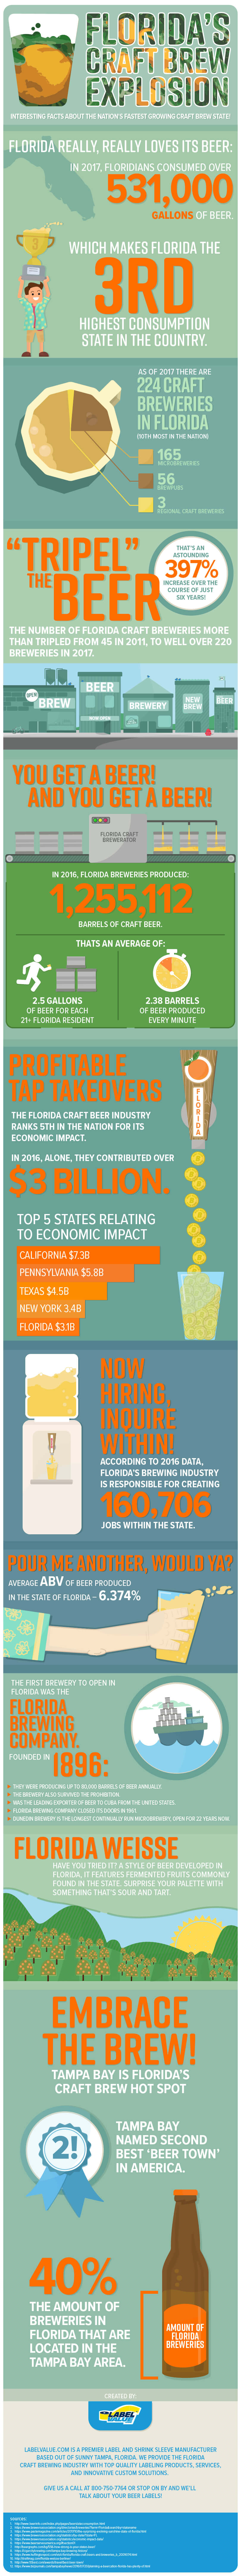 Floridas-Fast-Growing-Craft-Brewery-Industry-infographic-plaza